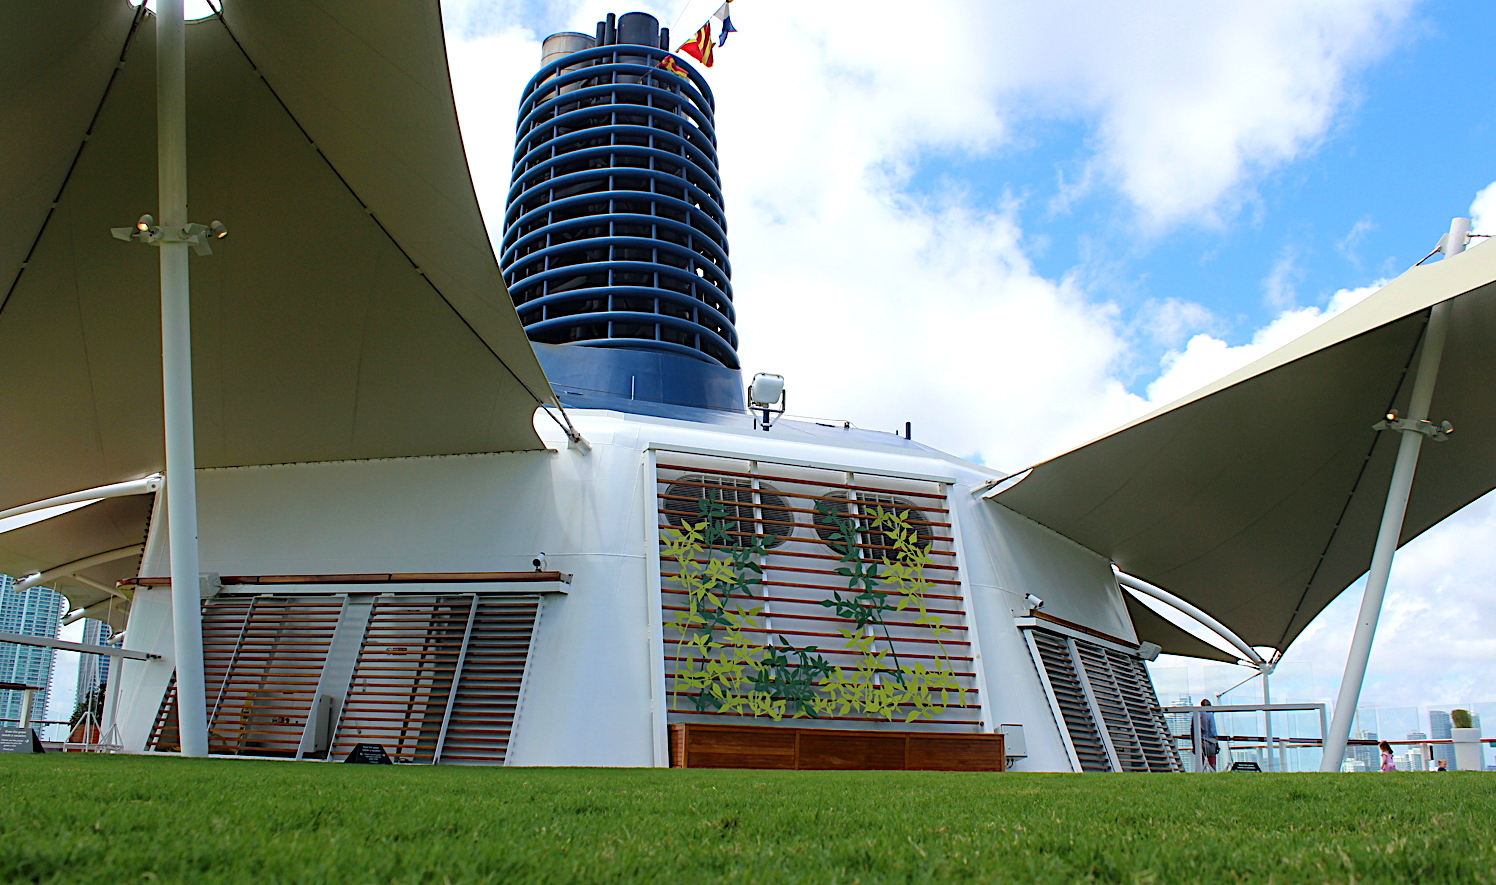 TAKE YOUR SHOES OFF. The Lawn Club on the top deck of Celebrity Equinox has real grass.